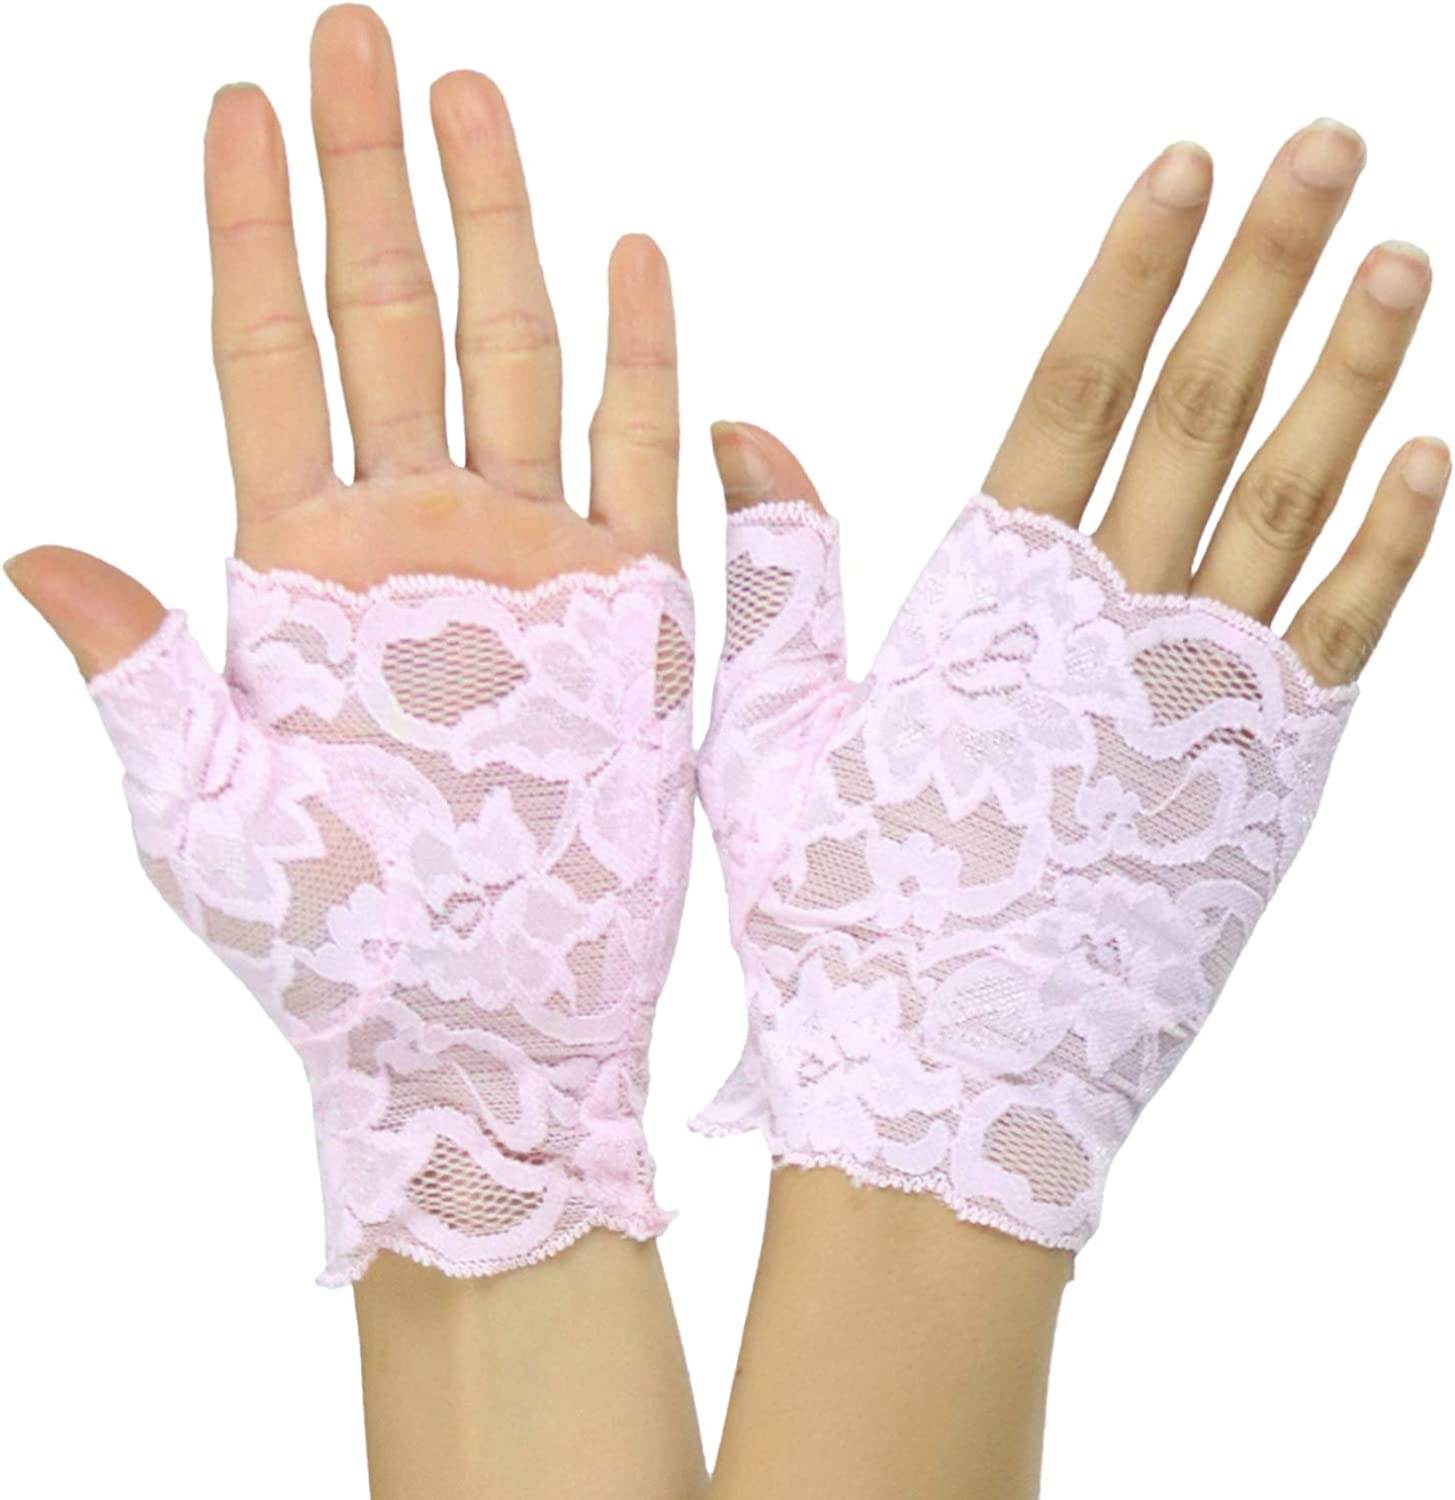 ToBeInStyle Women's Elegant Delicate Colorful Lace Fingerless Wrist Gloves